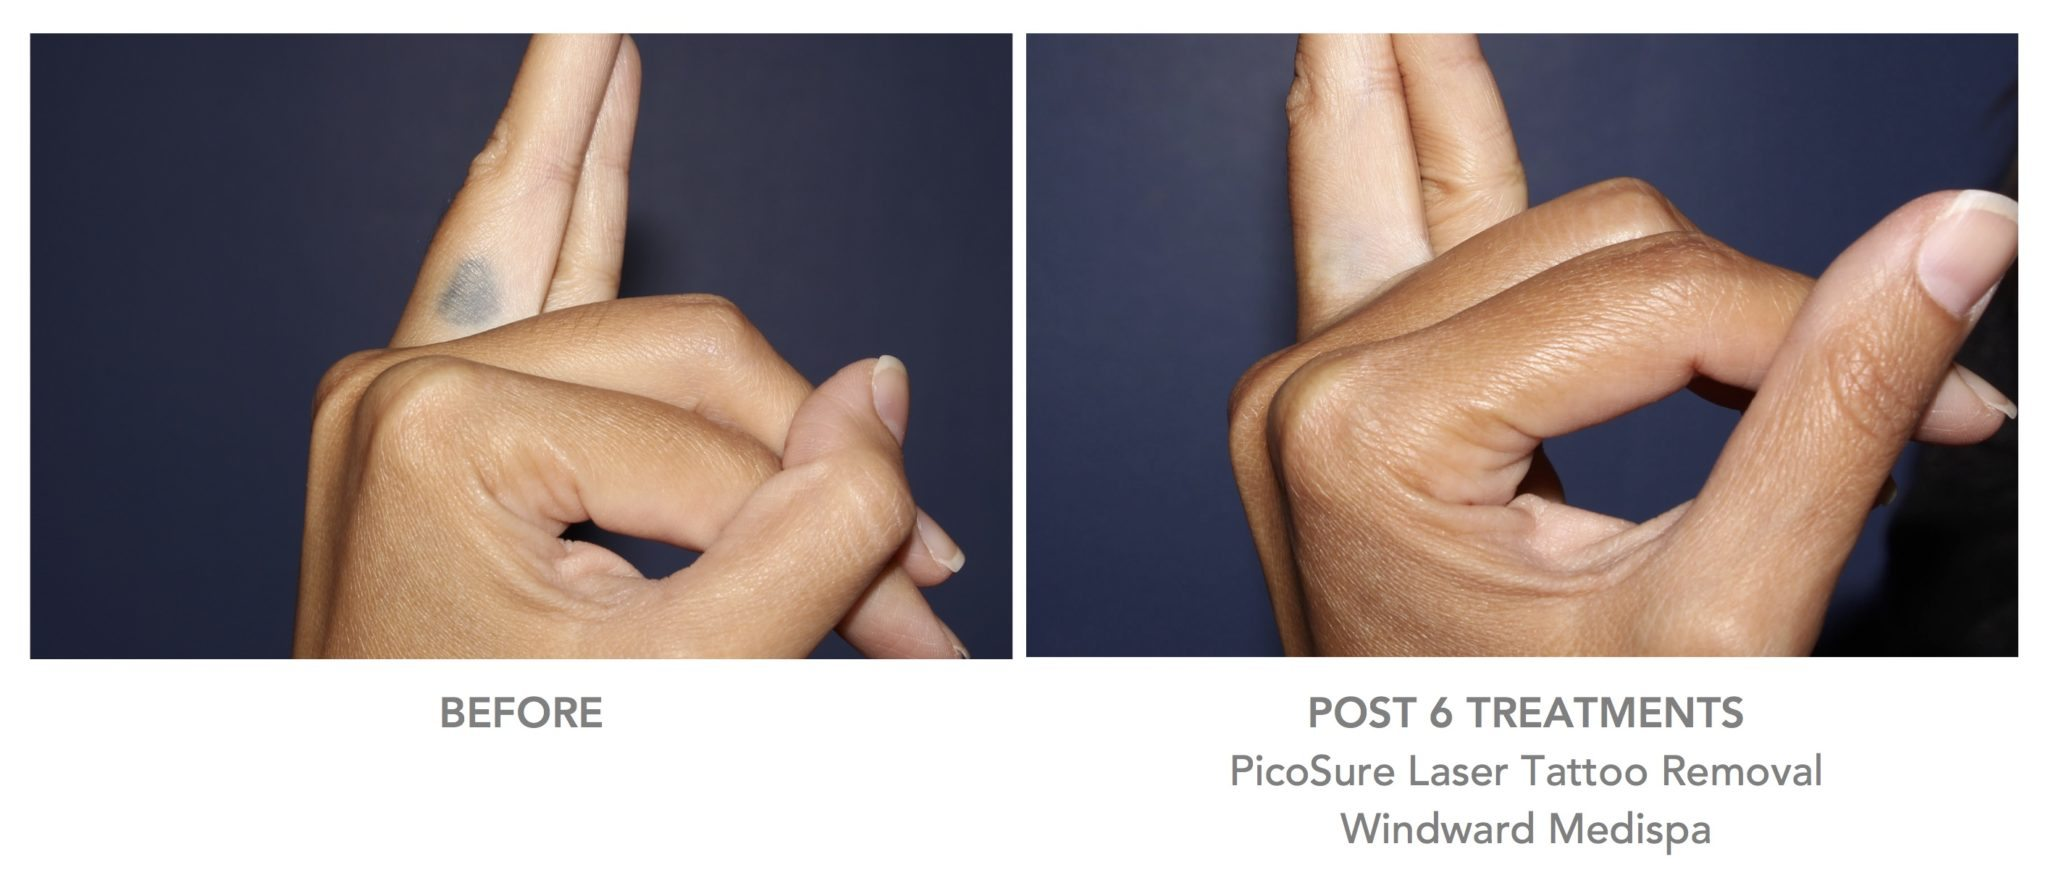 Galleries windward vein heart medispa for How much is picosure tattoo removal